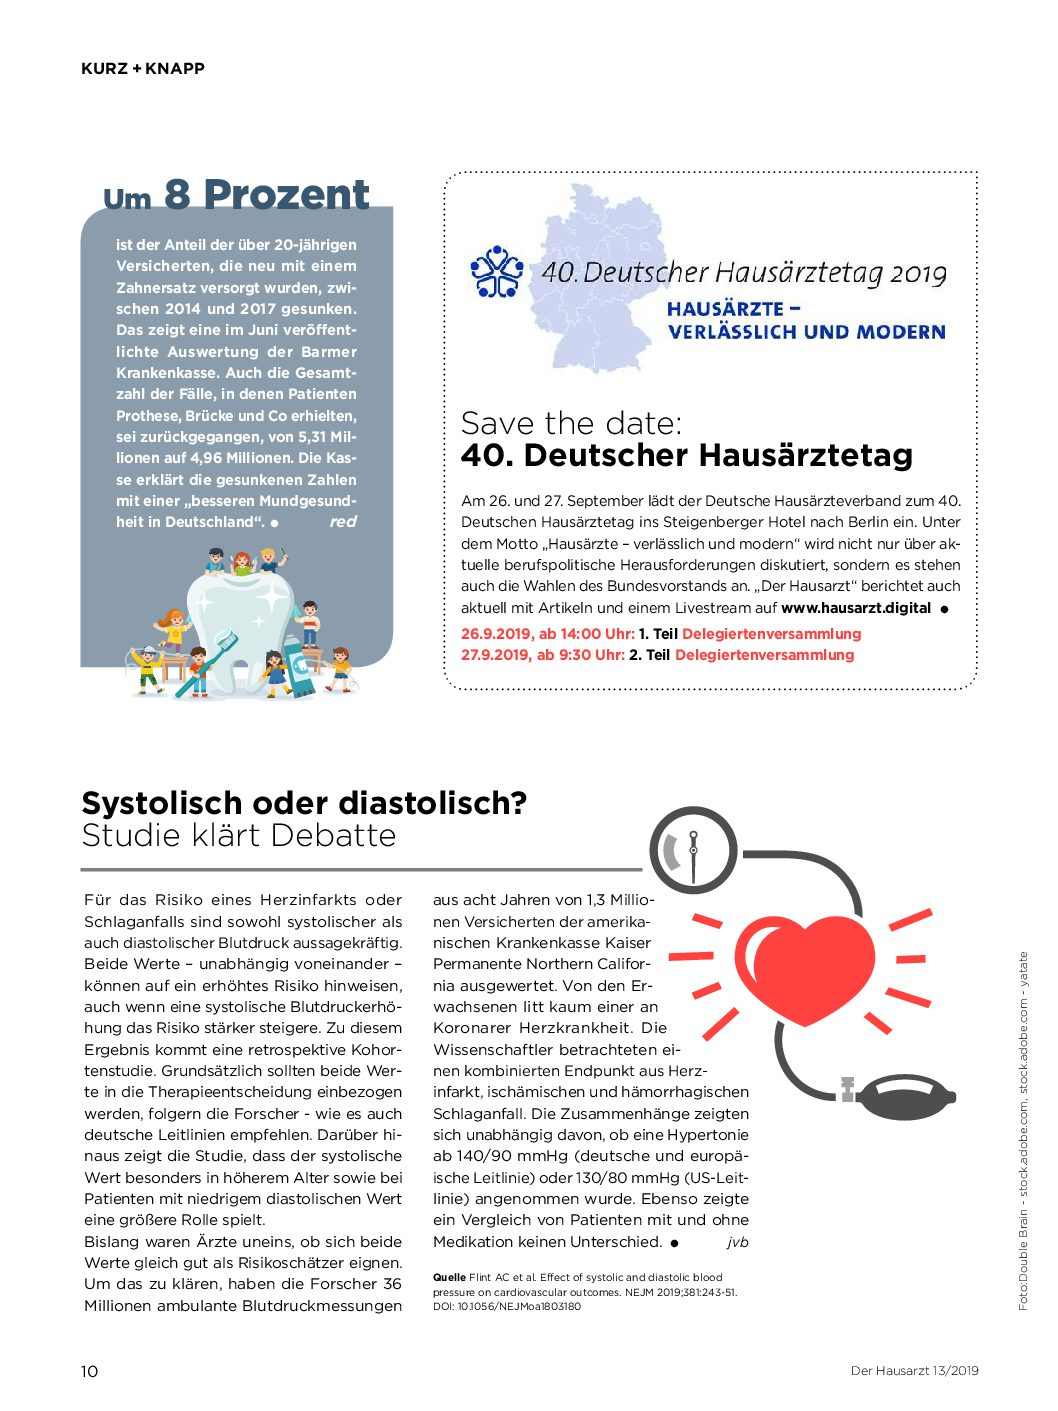 Radiologische Dating-Physik Problem